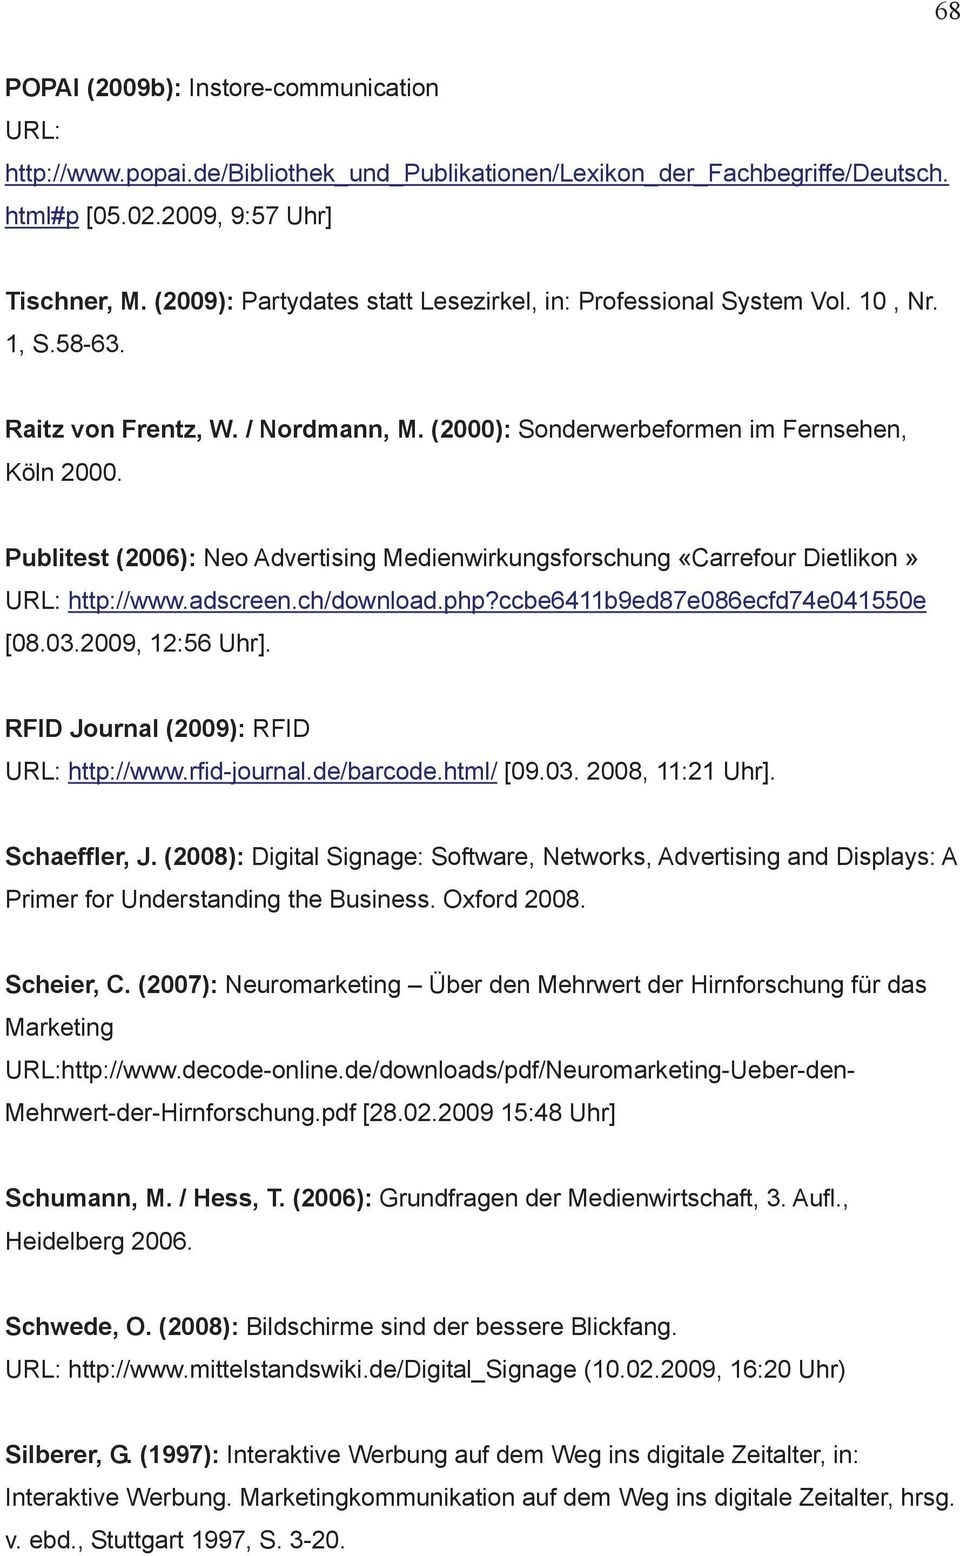 Publitest (2006): Neo Advertising Medienwirkungsforschung «Carrefour Dietlikon» http://www.adscreen.ch/download.php?ccbe6411b9ed87e086ecfd74e041550e [08.03.2009, 12:56 Uhr].